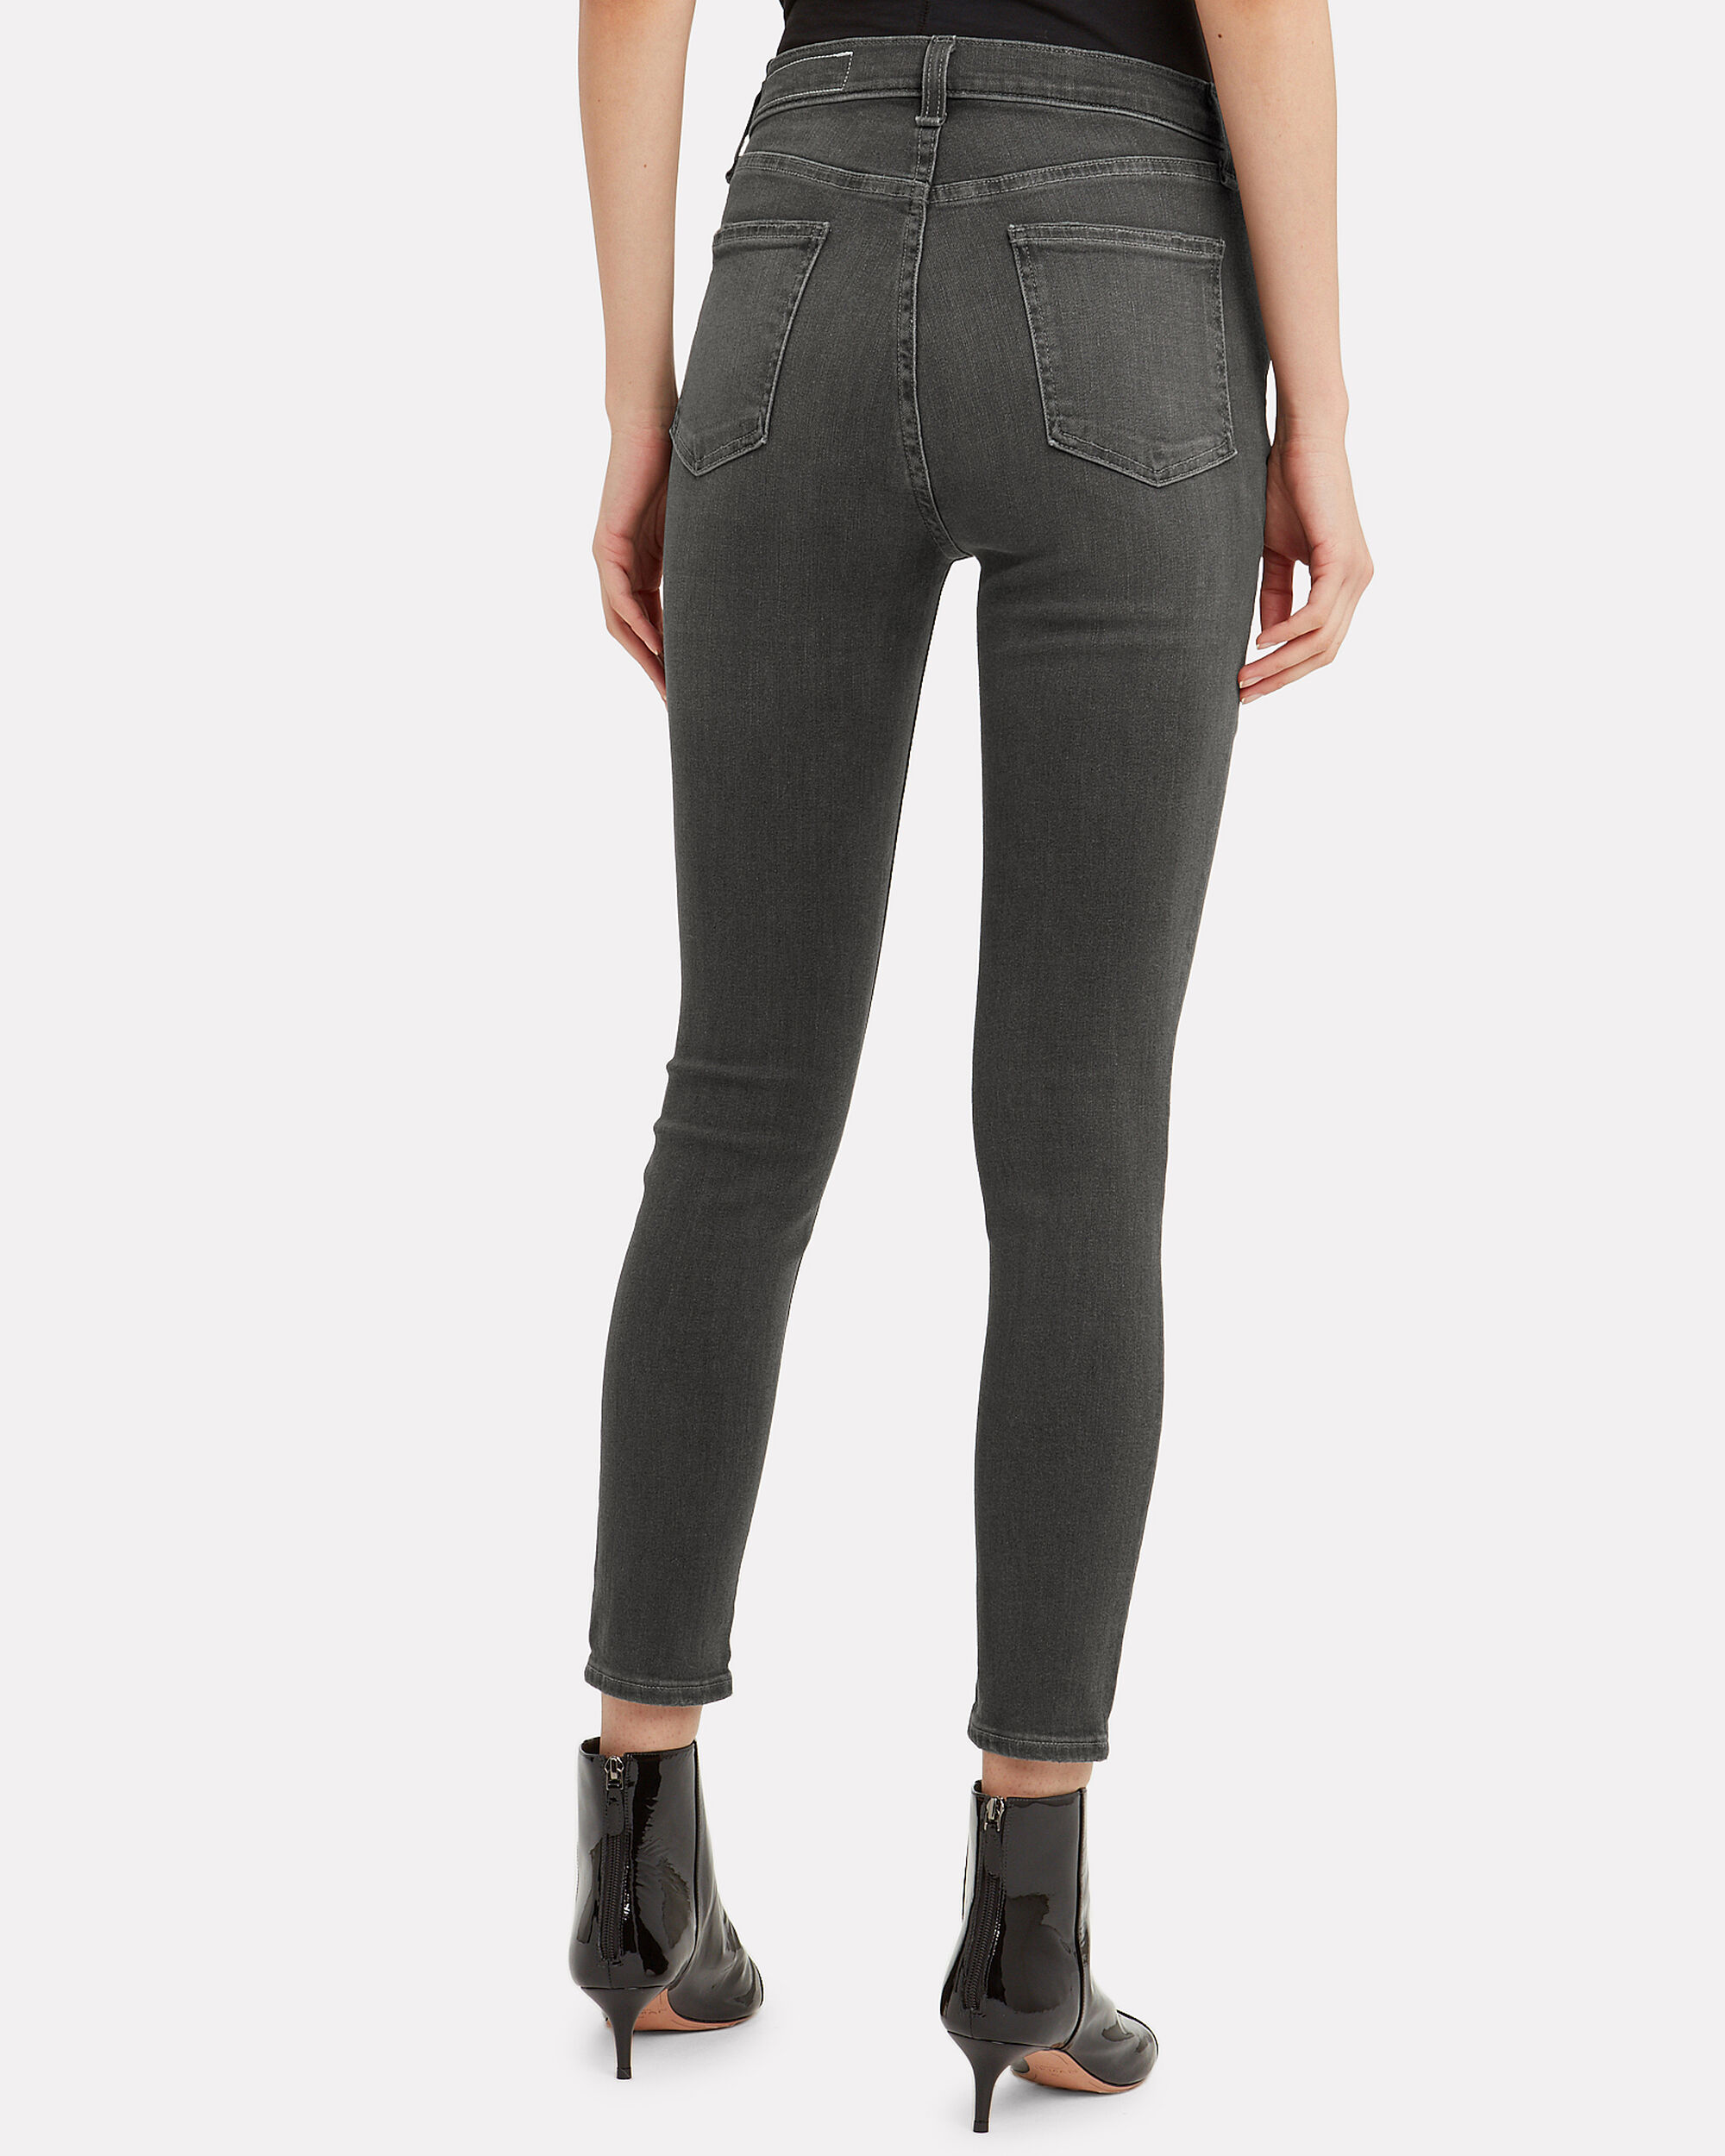 Baxter Coated Grey Jeans, GREY, hi-res